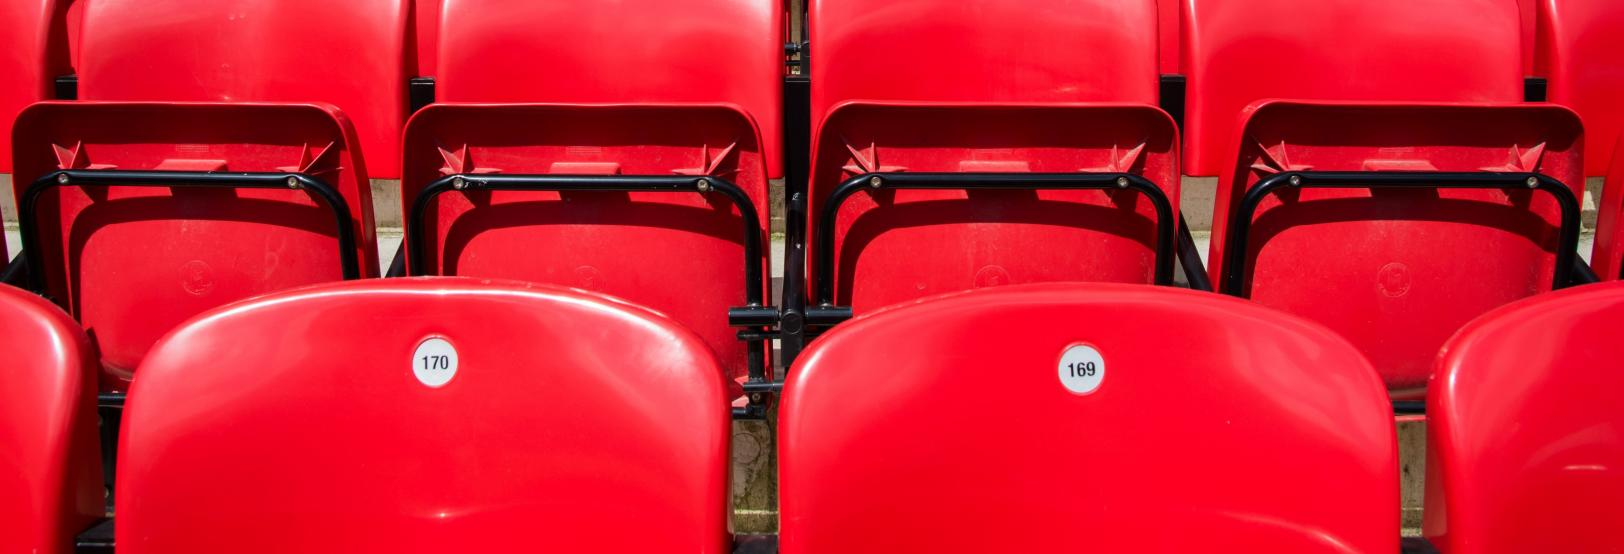 stadiums with red seats